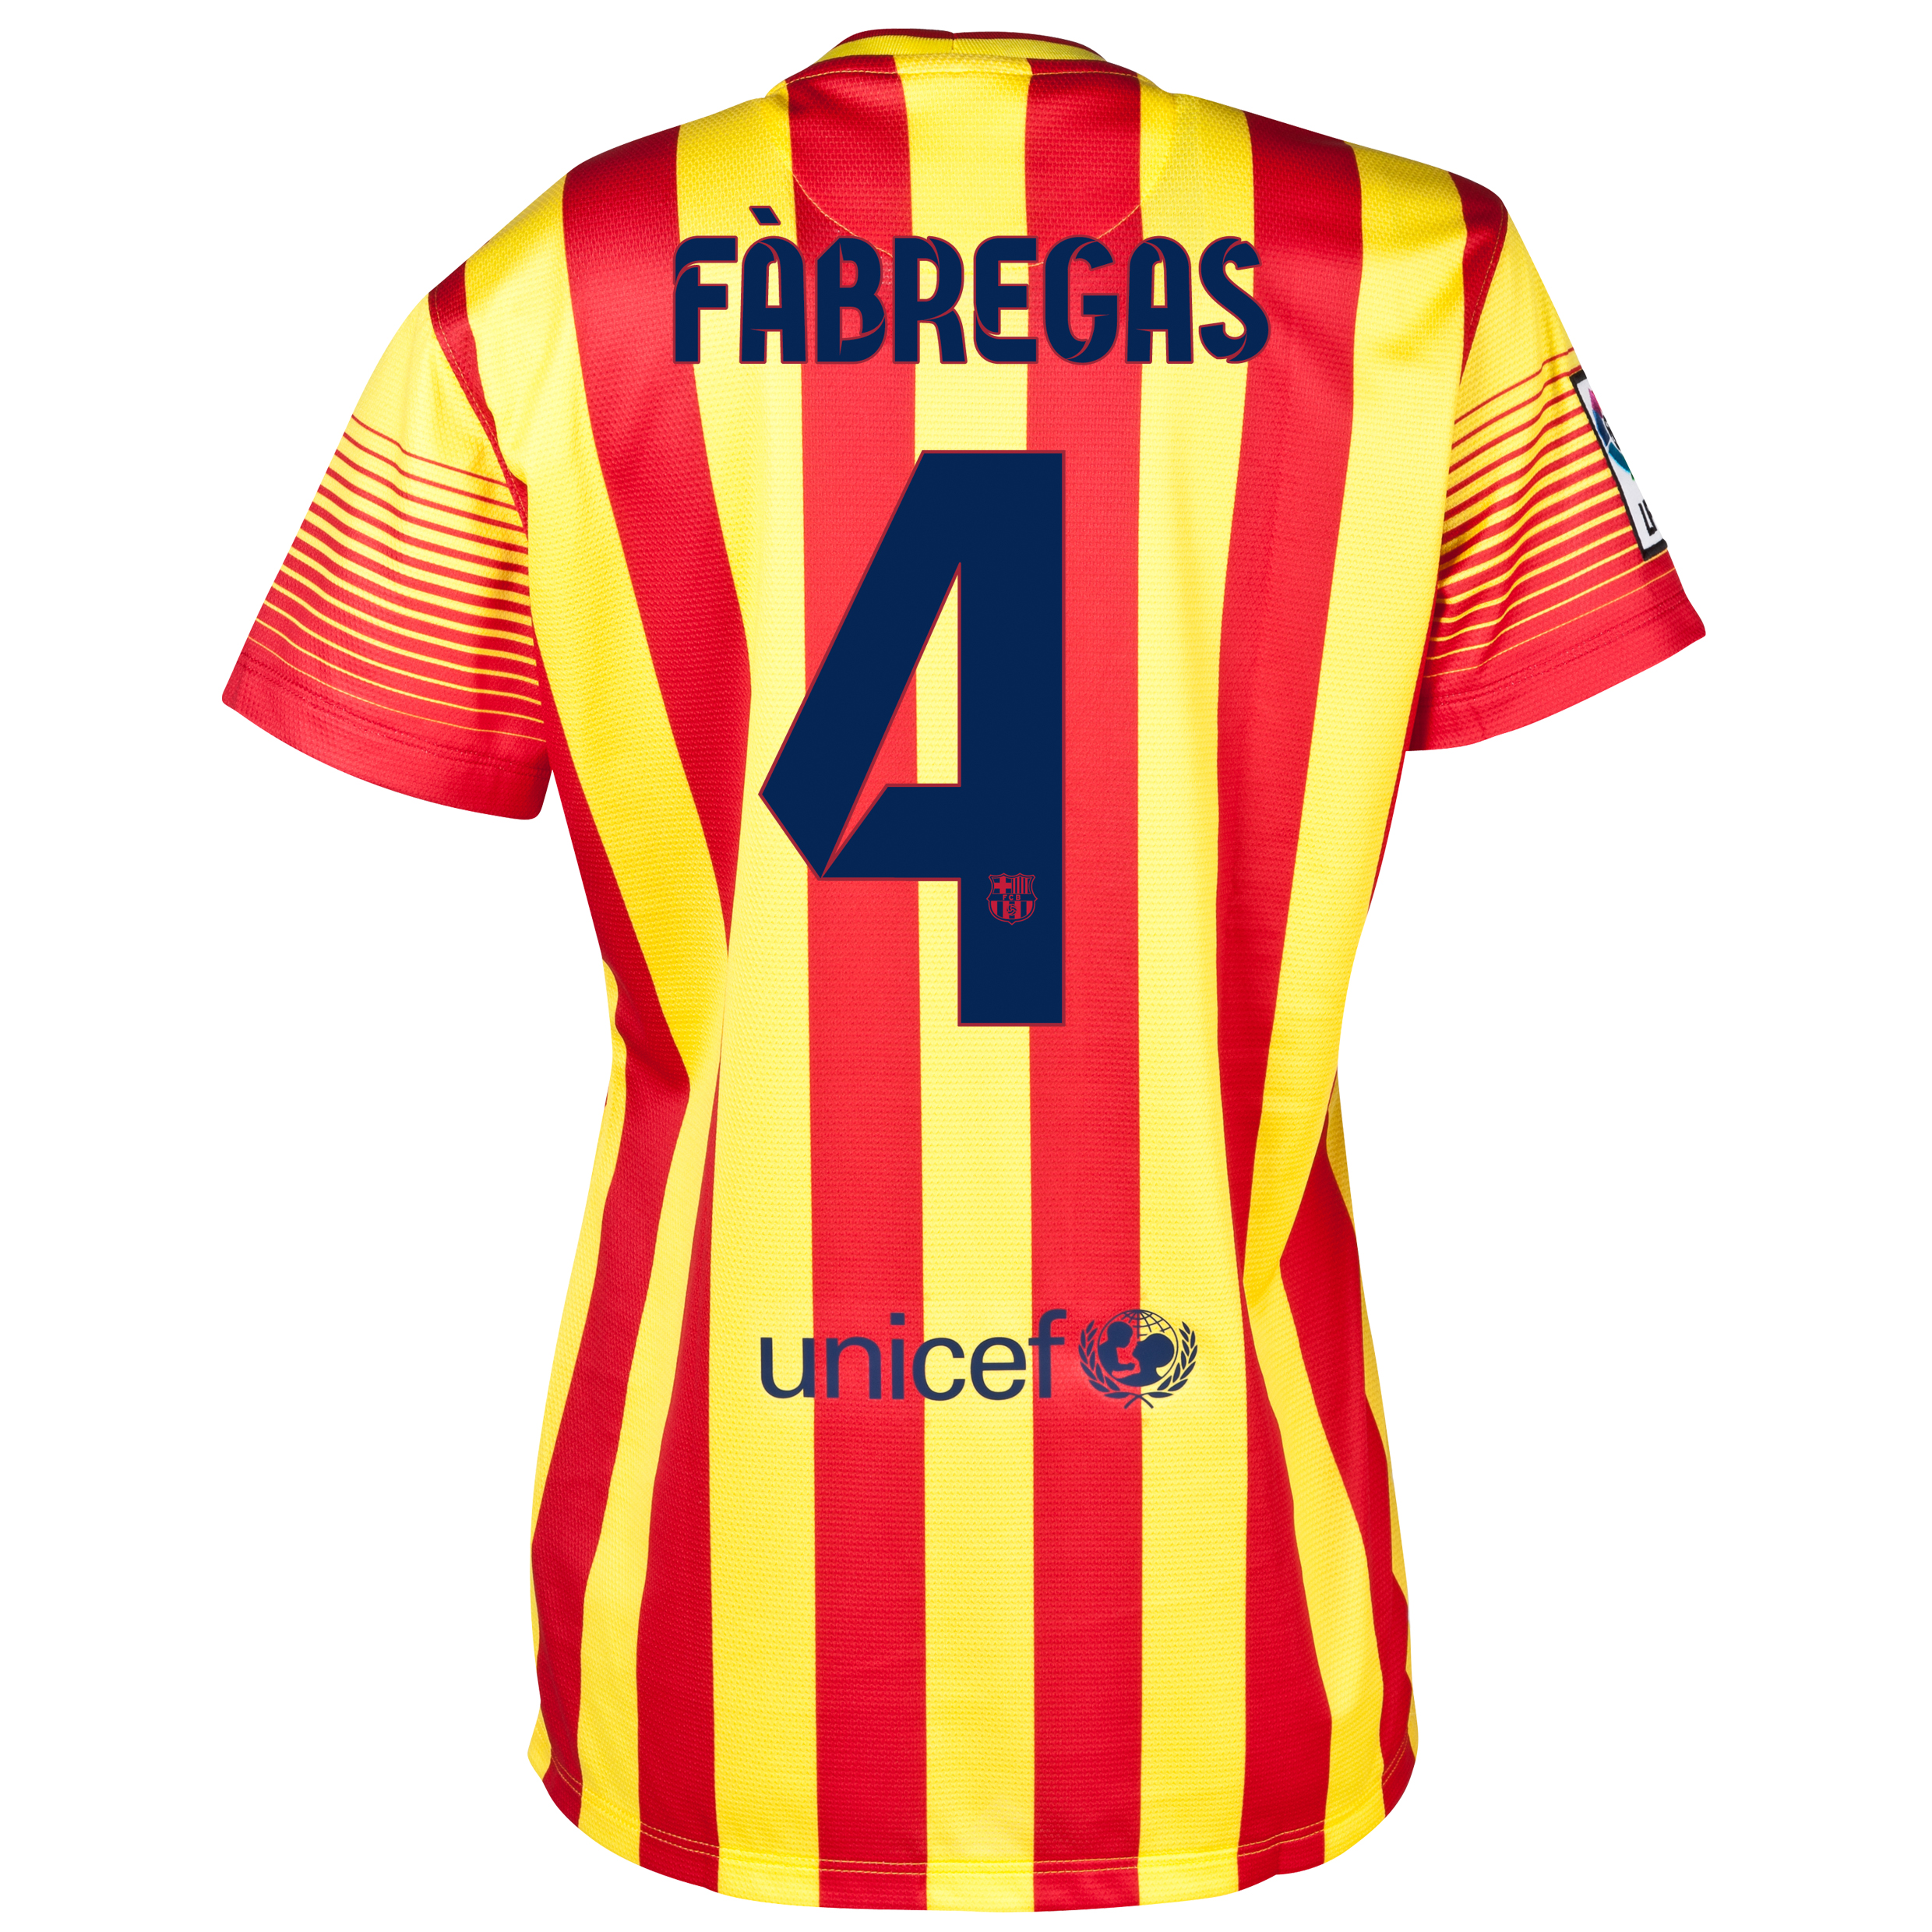 Barcelona Away Shirt 2013/14 - Womens with Fabregas 4 printing